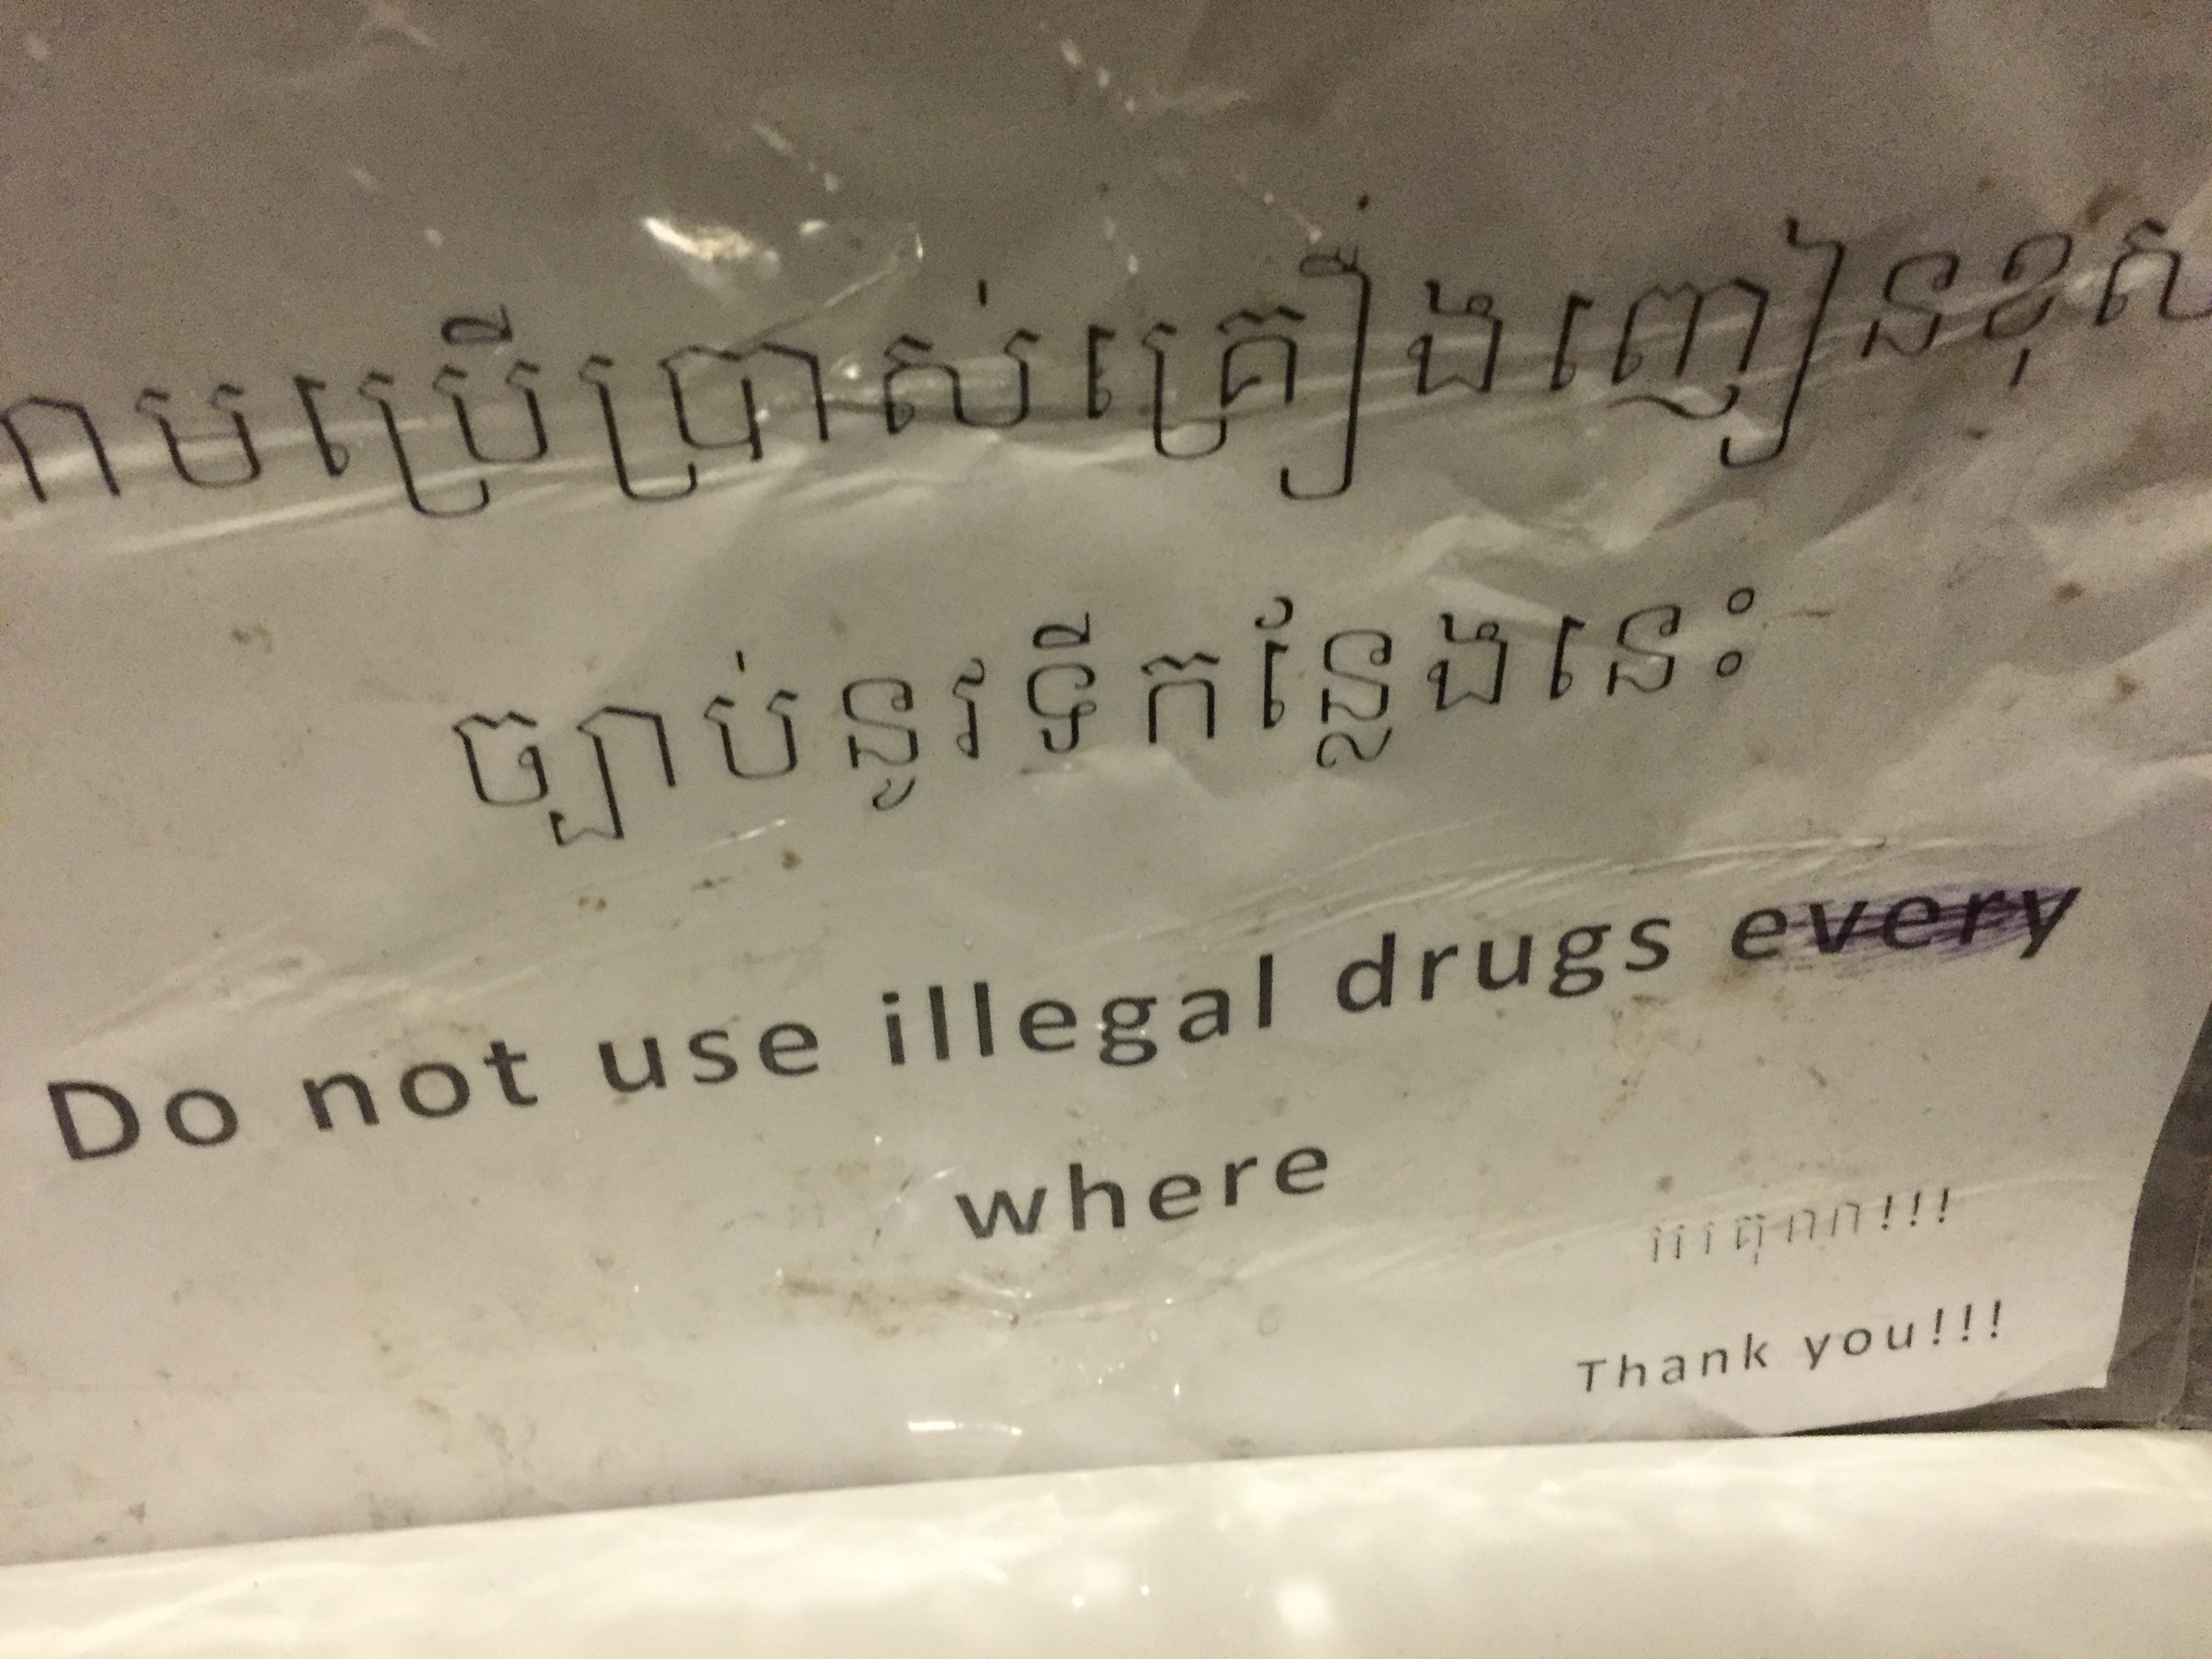 Siem Reap is the capital of good sign phrasing.